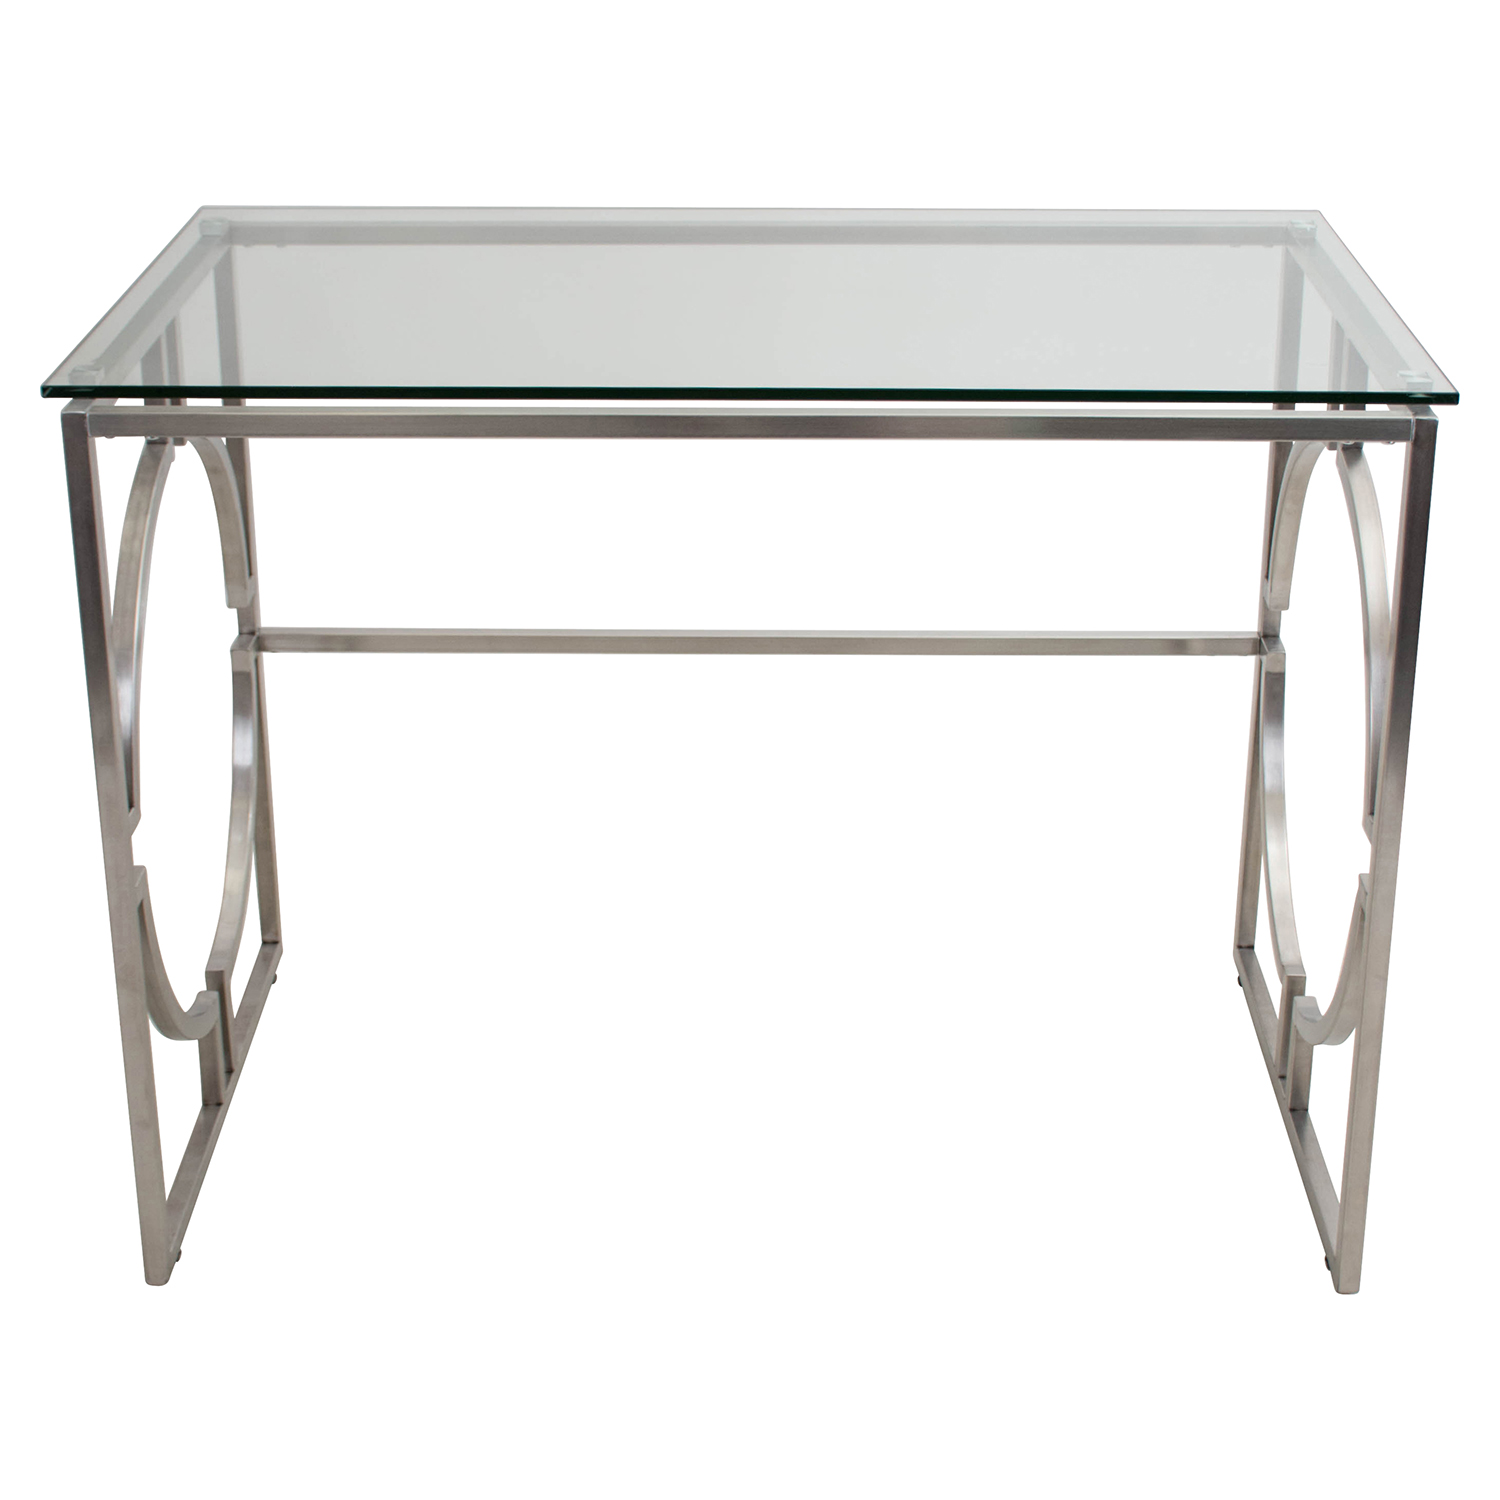 Dynasty Rectangular Office Desk - Clear - LMS-OFD-DNSTY-CL